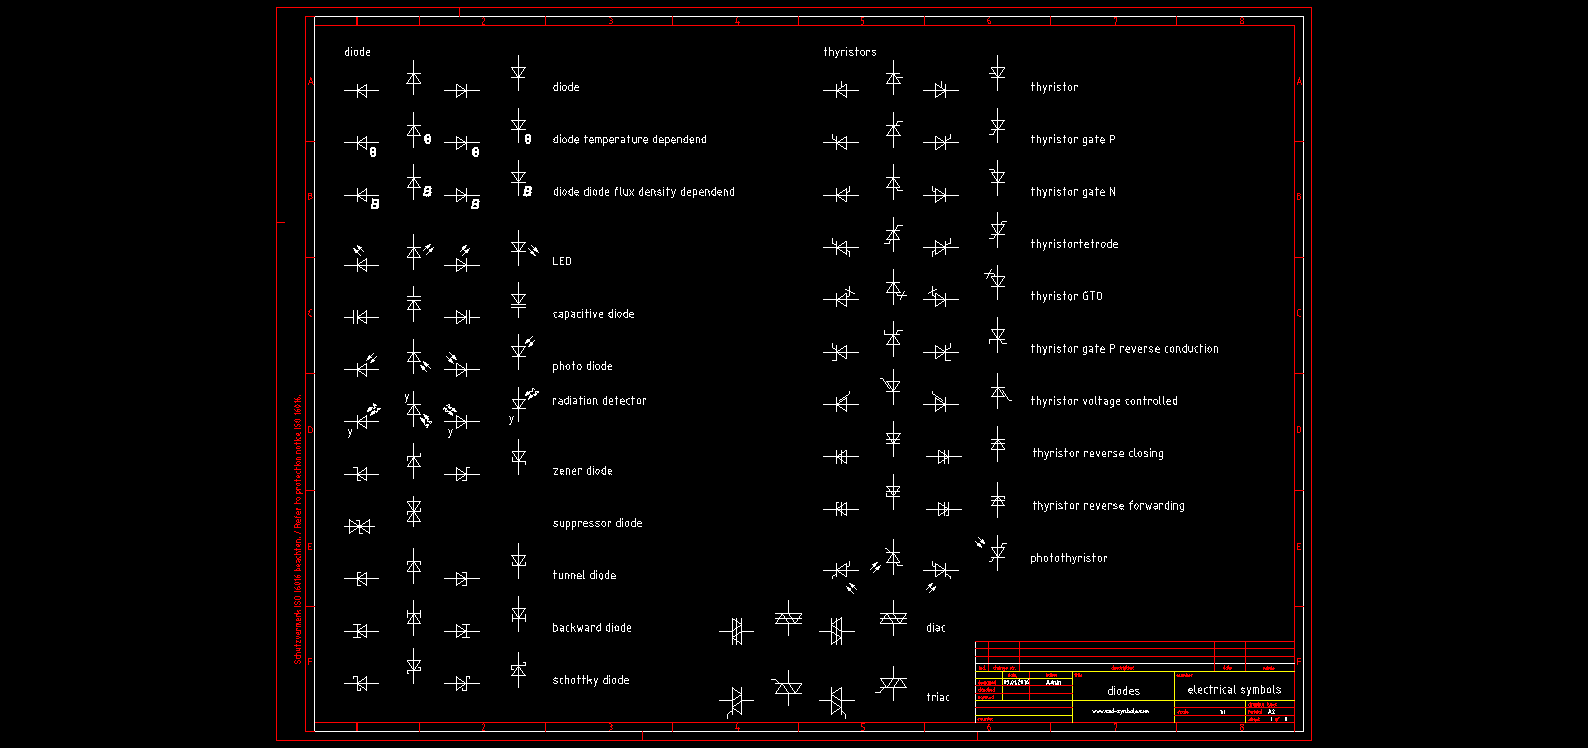 Wiring symbols autocad diy wiring diagrams electrical electronic symbols blocks english cad symbole rh cad symbole com electrical wiring diagram symbols autocad wiring diagram symbols cheapraybanclubmaster Images